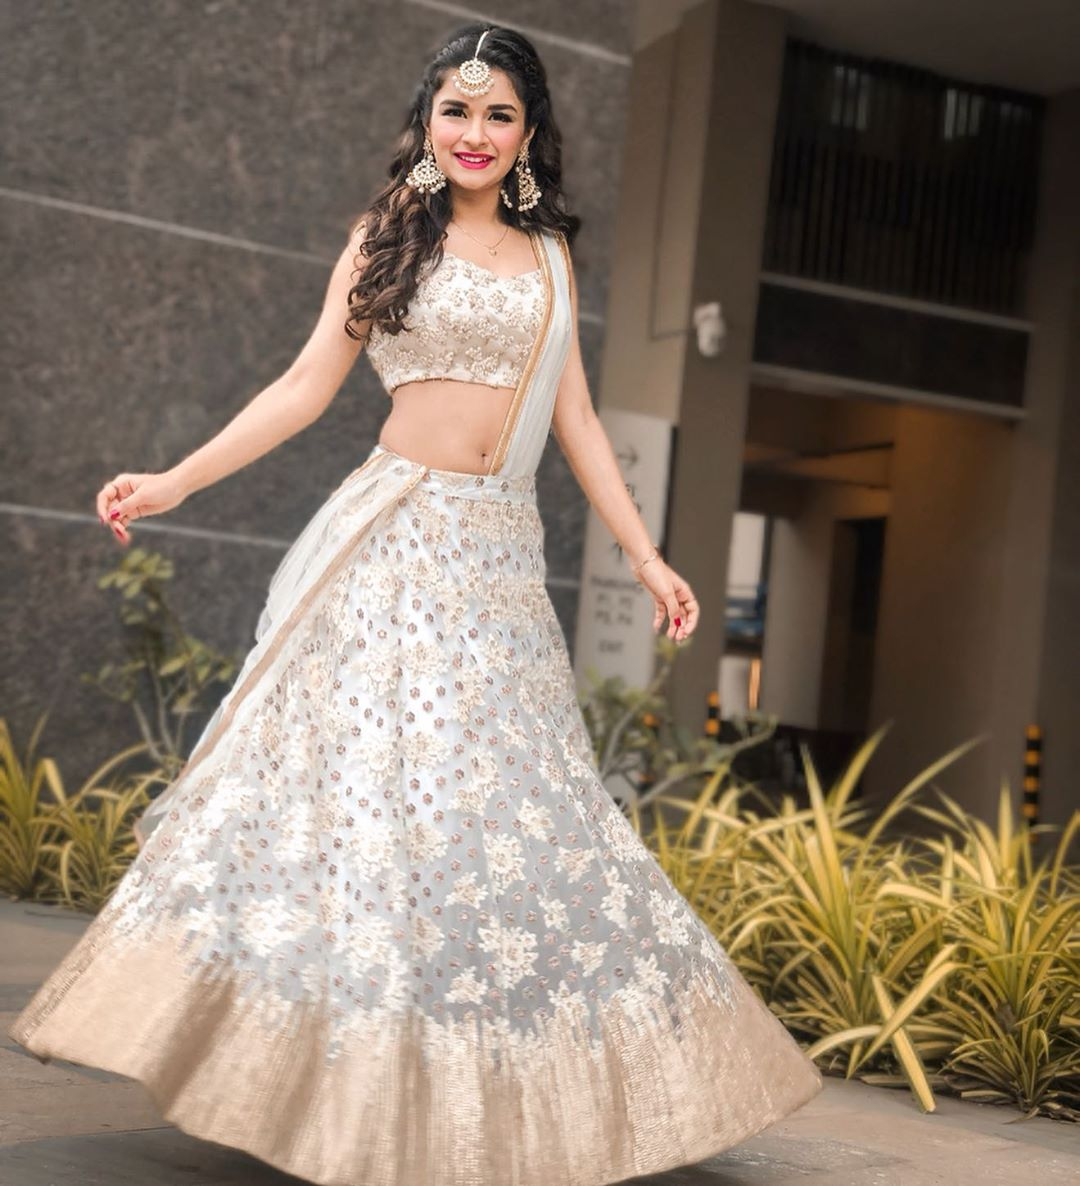 Avneet Kaur VS Ashnoor Kaur VS Nithya Menon VS Mithila Palkar: Whose Lehenga Look Is Perfect For Lockdown Wedding? 4